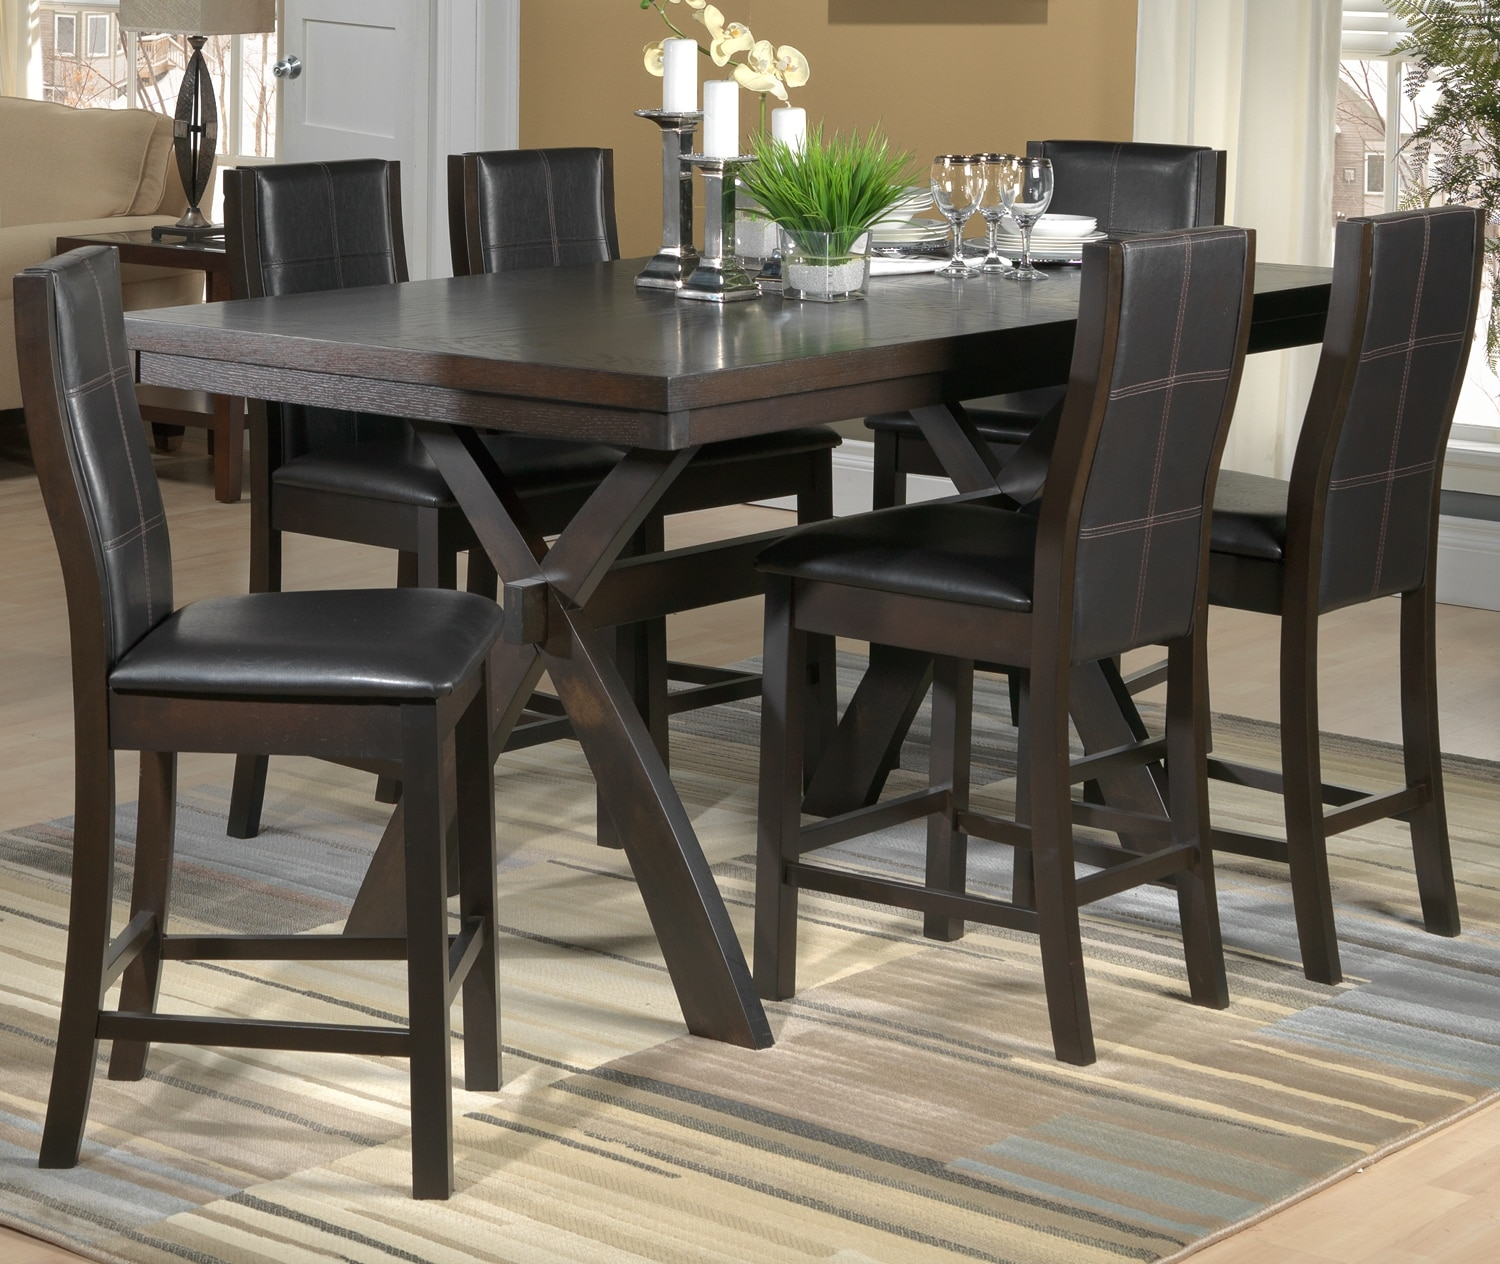 Grethell 7 piece pub height dining room set espresso for 7 piece dining room set